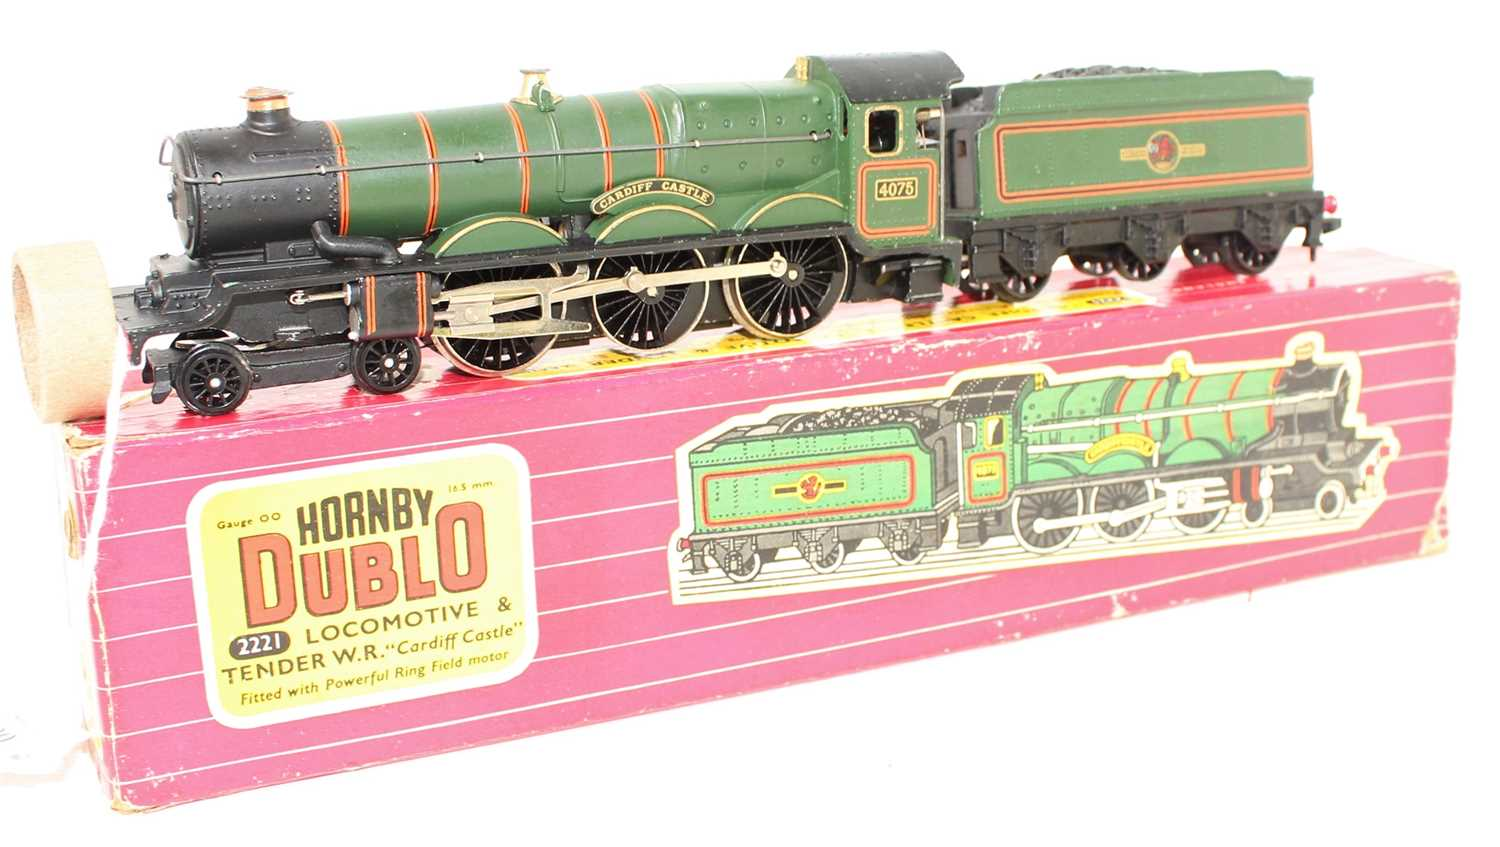 A Hornby Dublo No. 2221 2-rail Cardiff Castle locomotive and tender housed in the original card